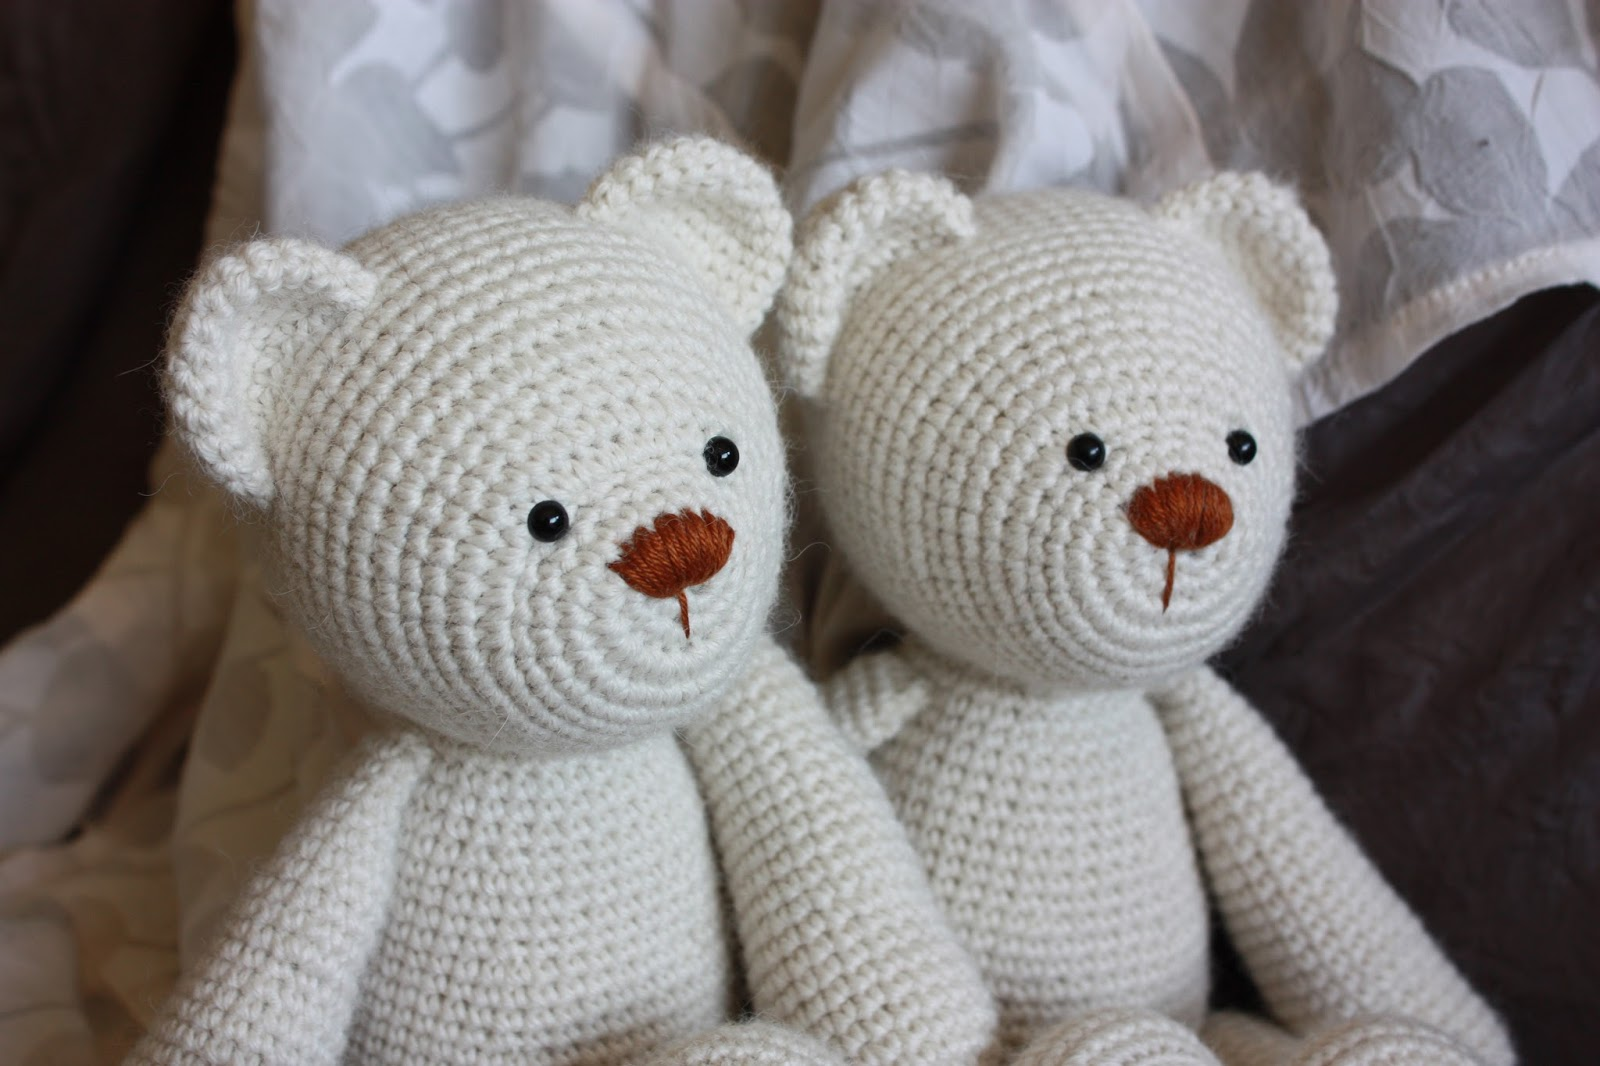 Amigurumi Free Patterns Bear : Happyamigurumi: lucas the teddy bear pattern: new teddy bear friends